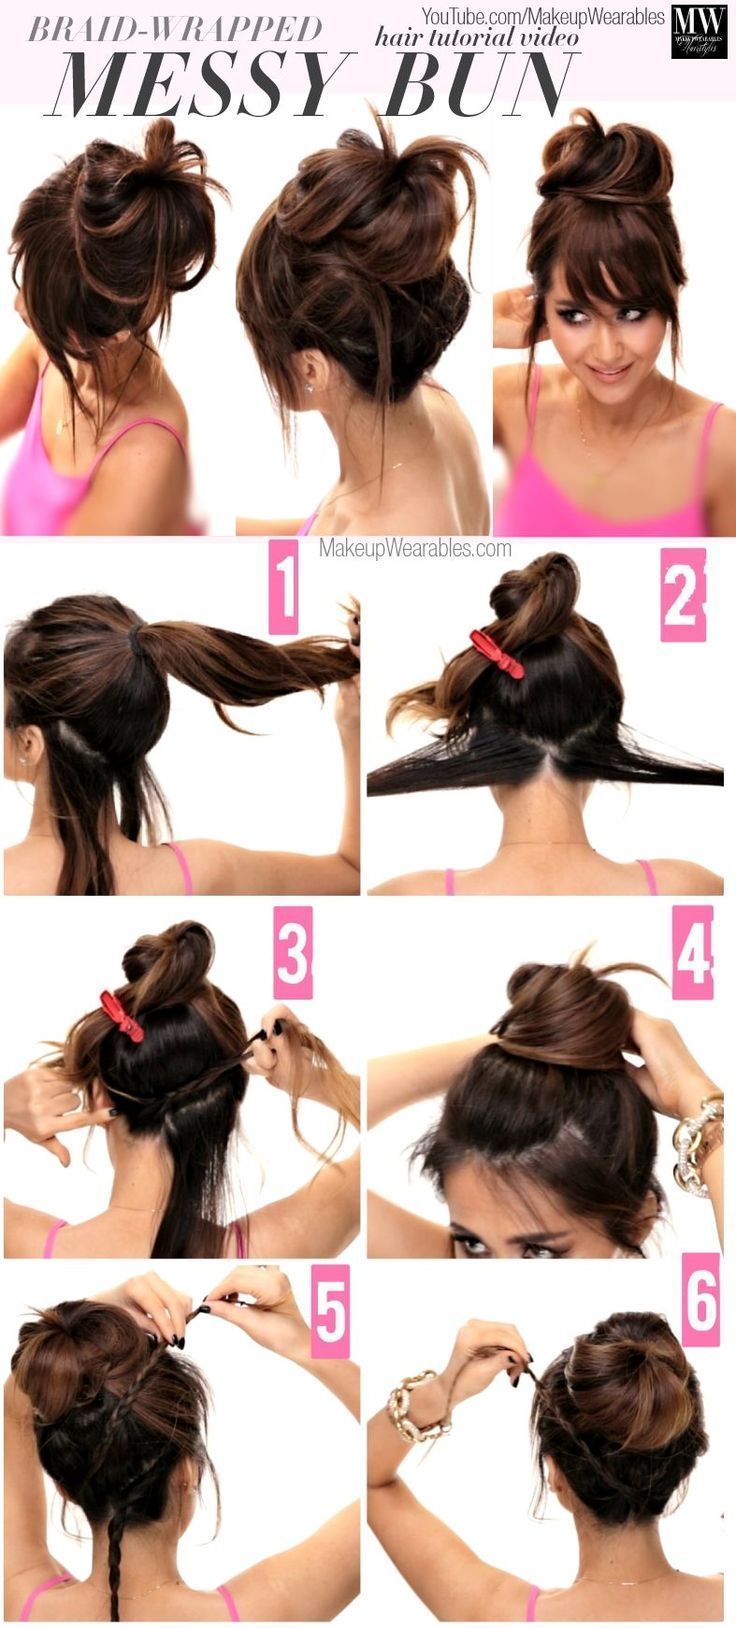 Best How To Make Messy Bun Ideas On Pinterest Perfect Messy - Hairstyle diy tumblr